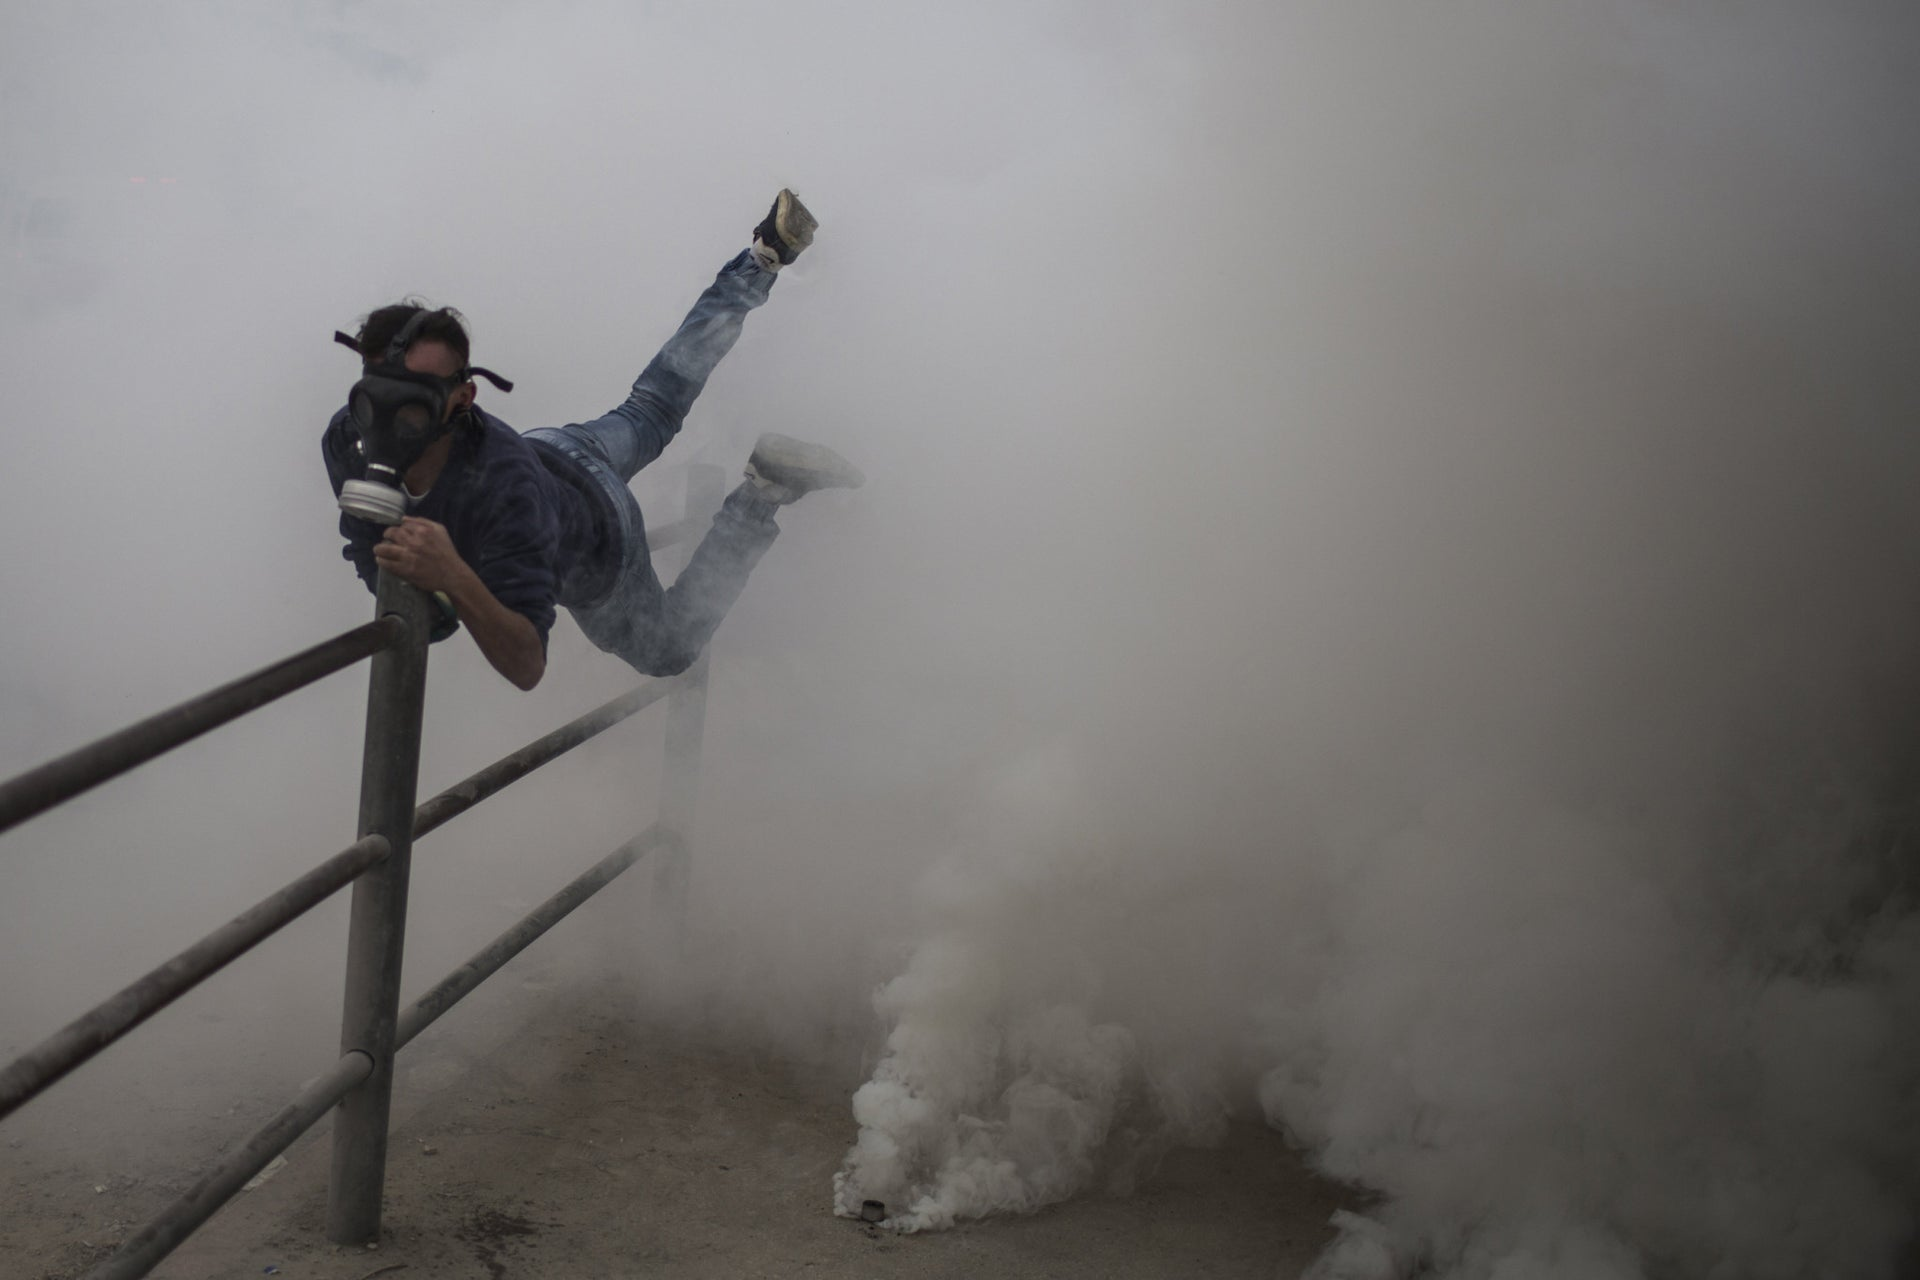 Single News photo winner: A Palestinian youth amidst a conflict with IDF soldiers, West Bank.